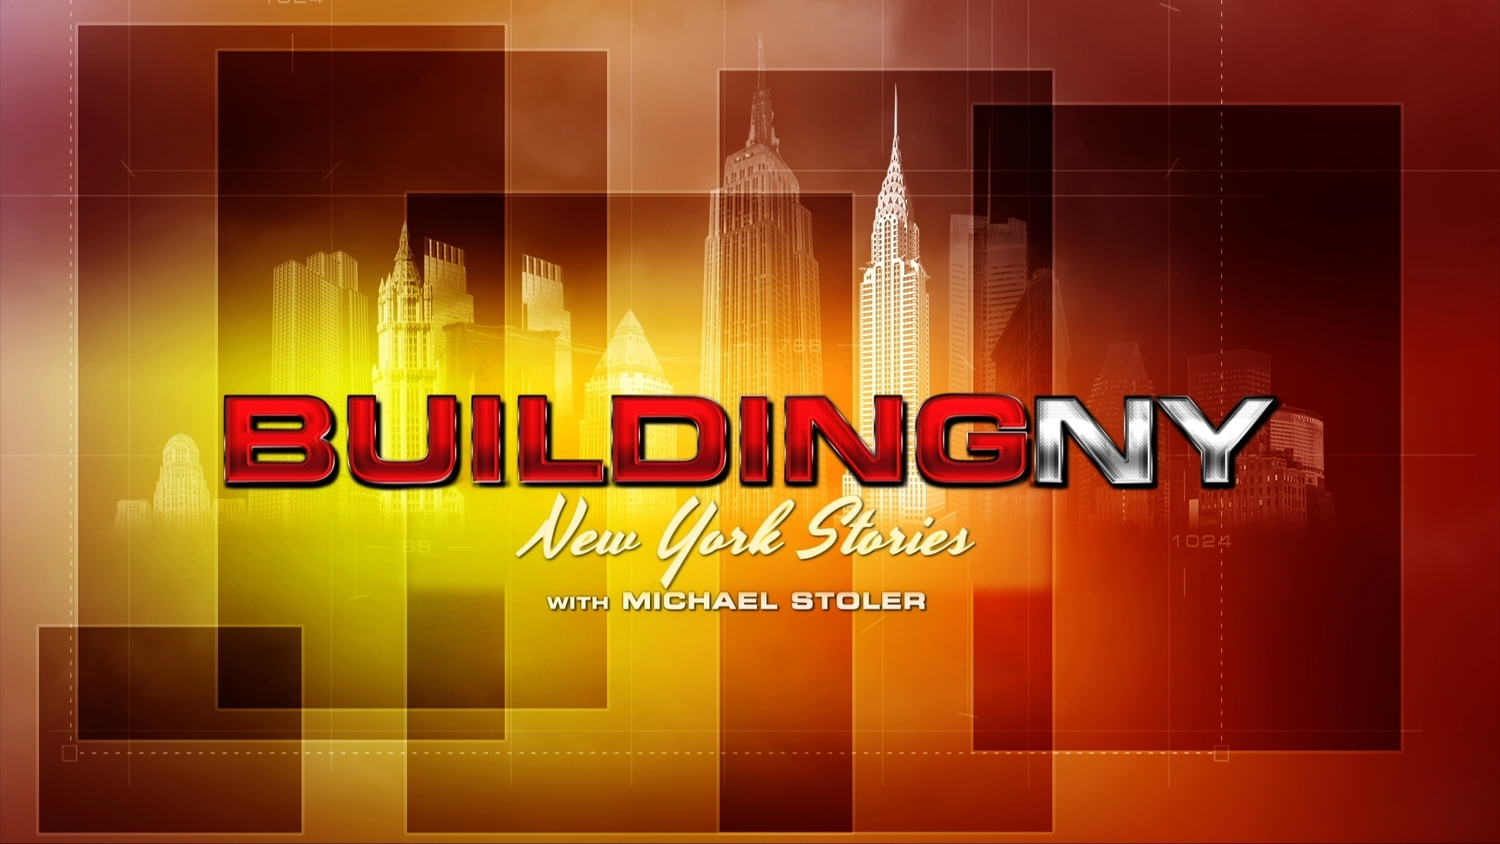 Building New York-New York Life Stories